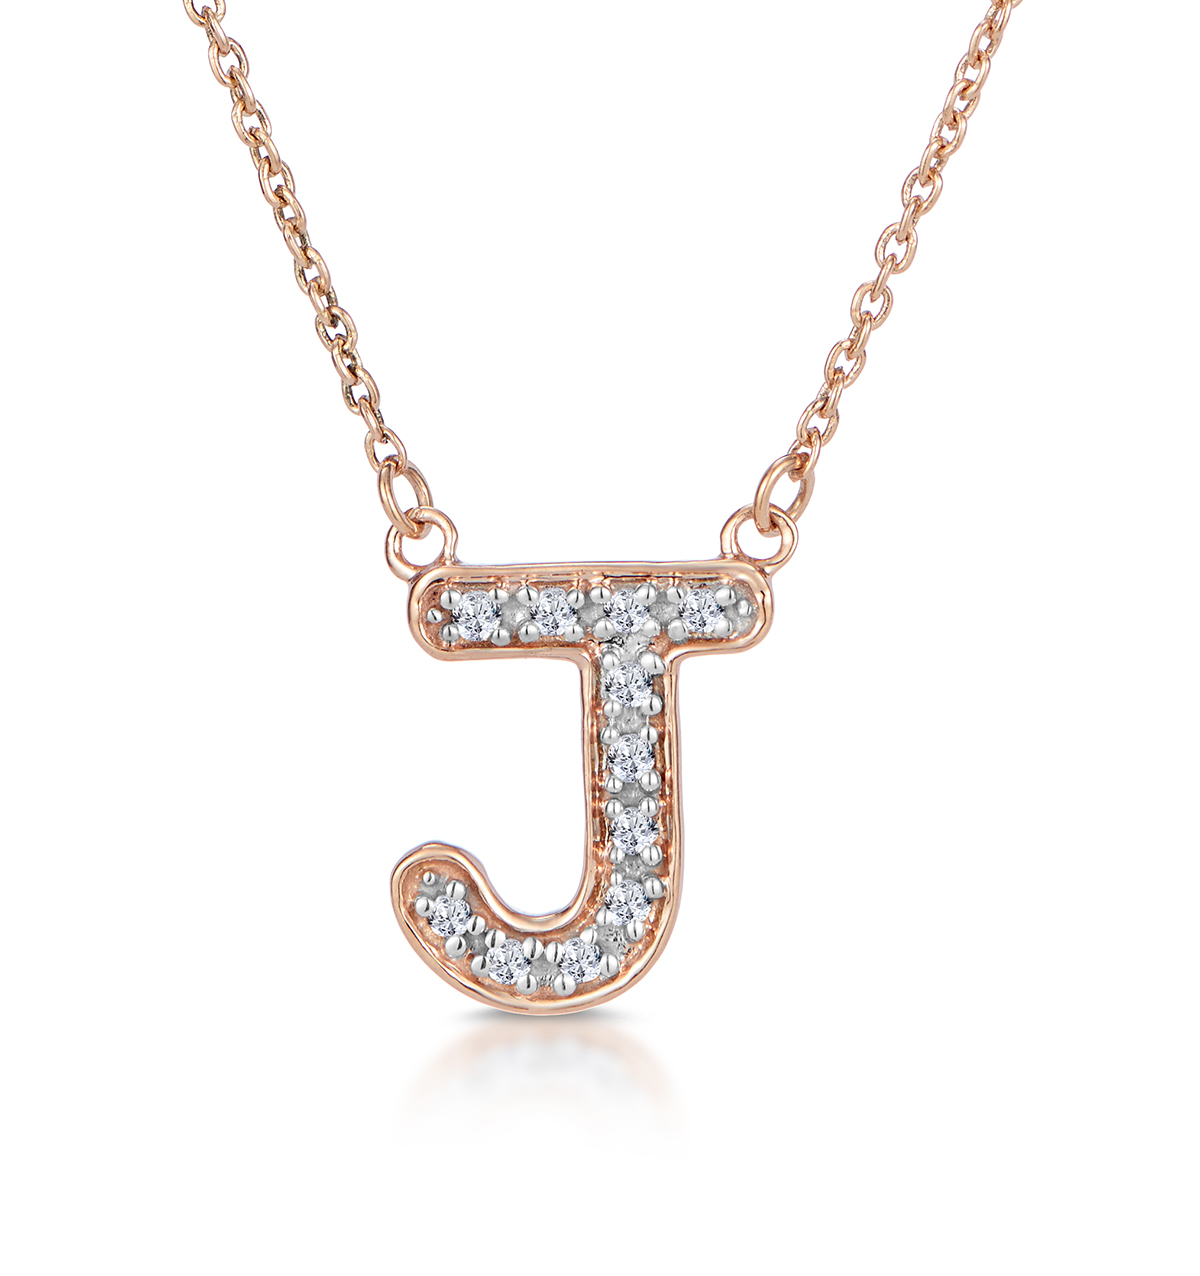 Diamond Encrusted Initial 'J' Necklace Pave Set in 9K Rose Gold